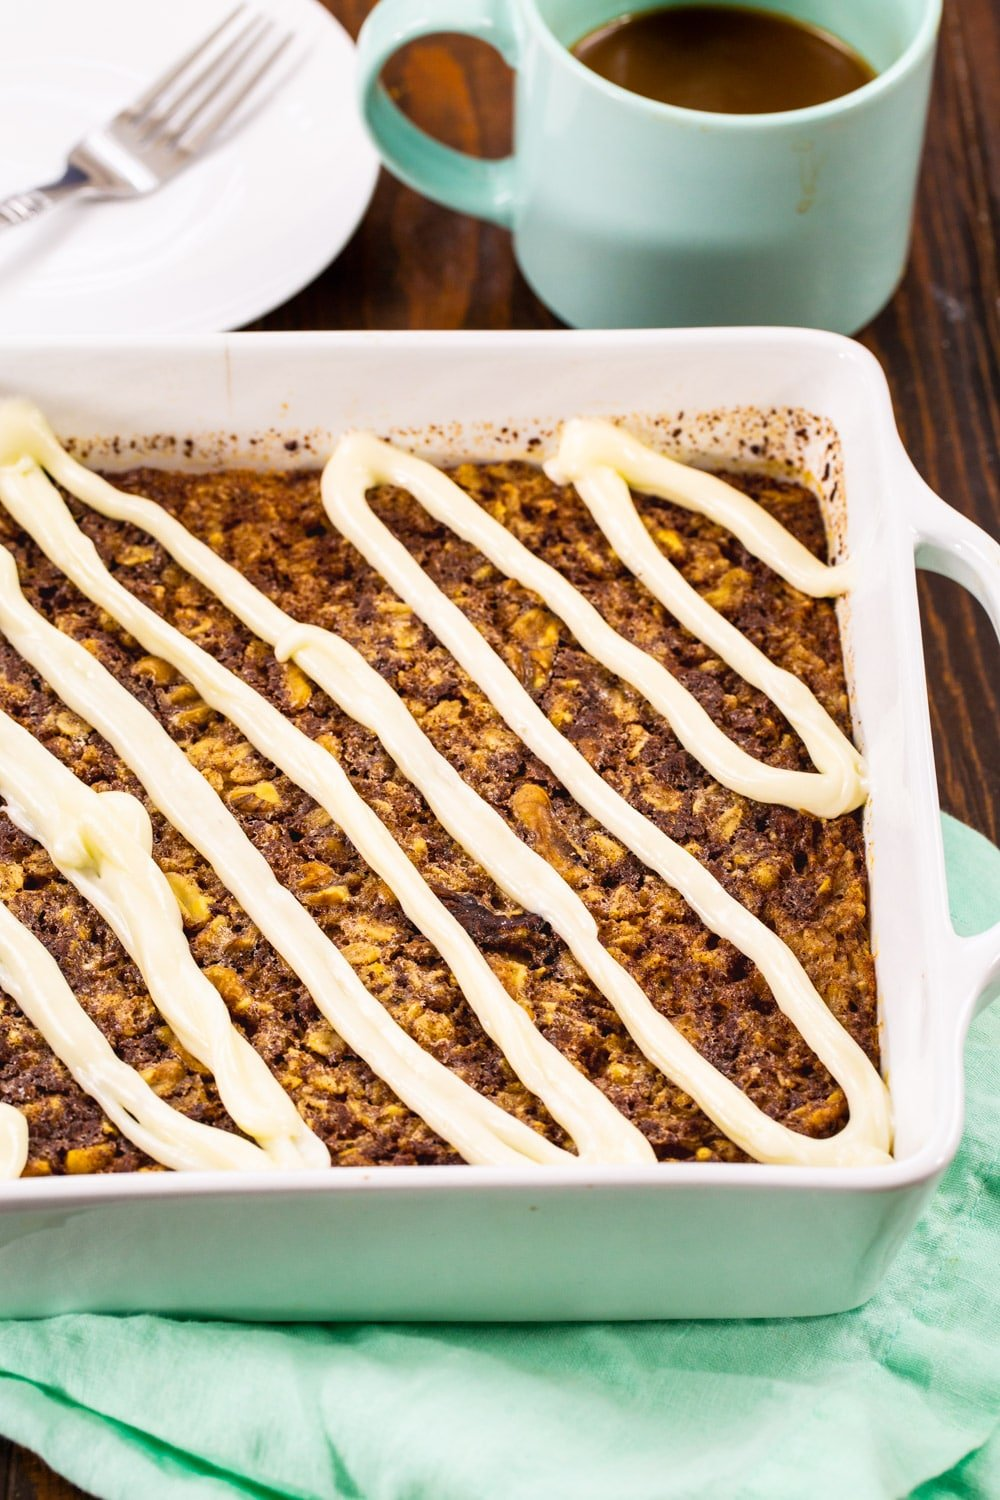 Baked Oatmeal topped with cream cheese glaze in a baking dish.